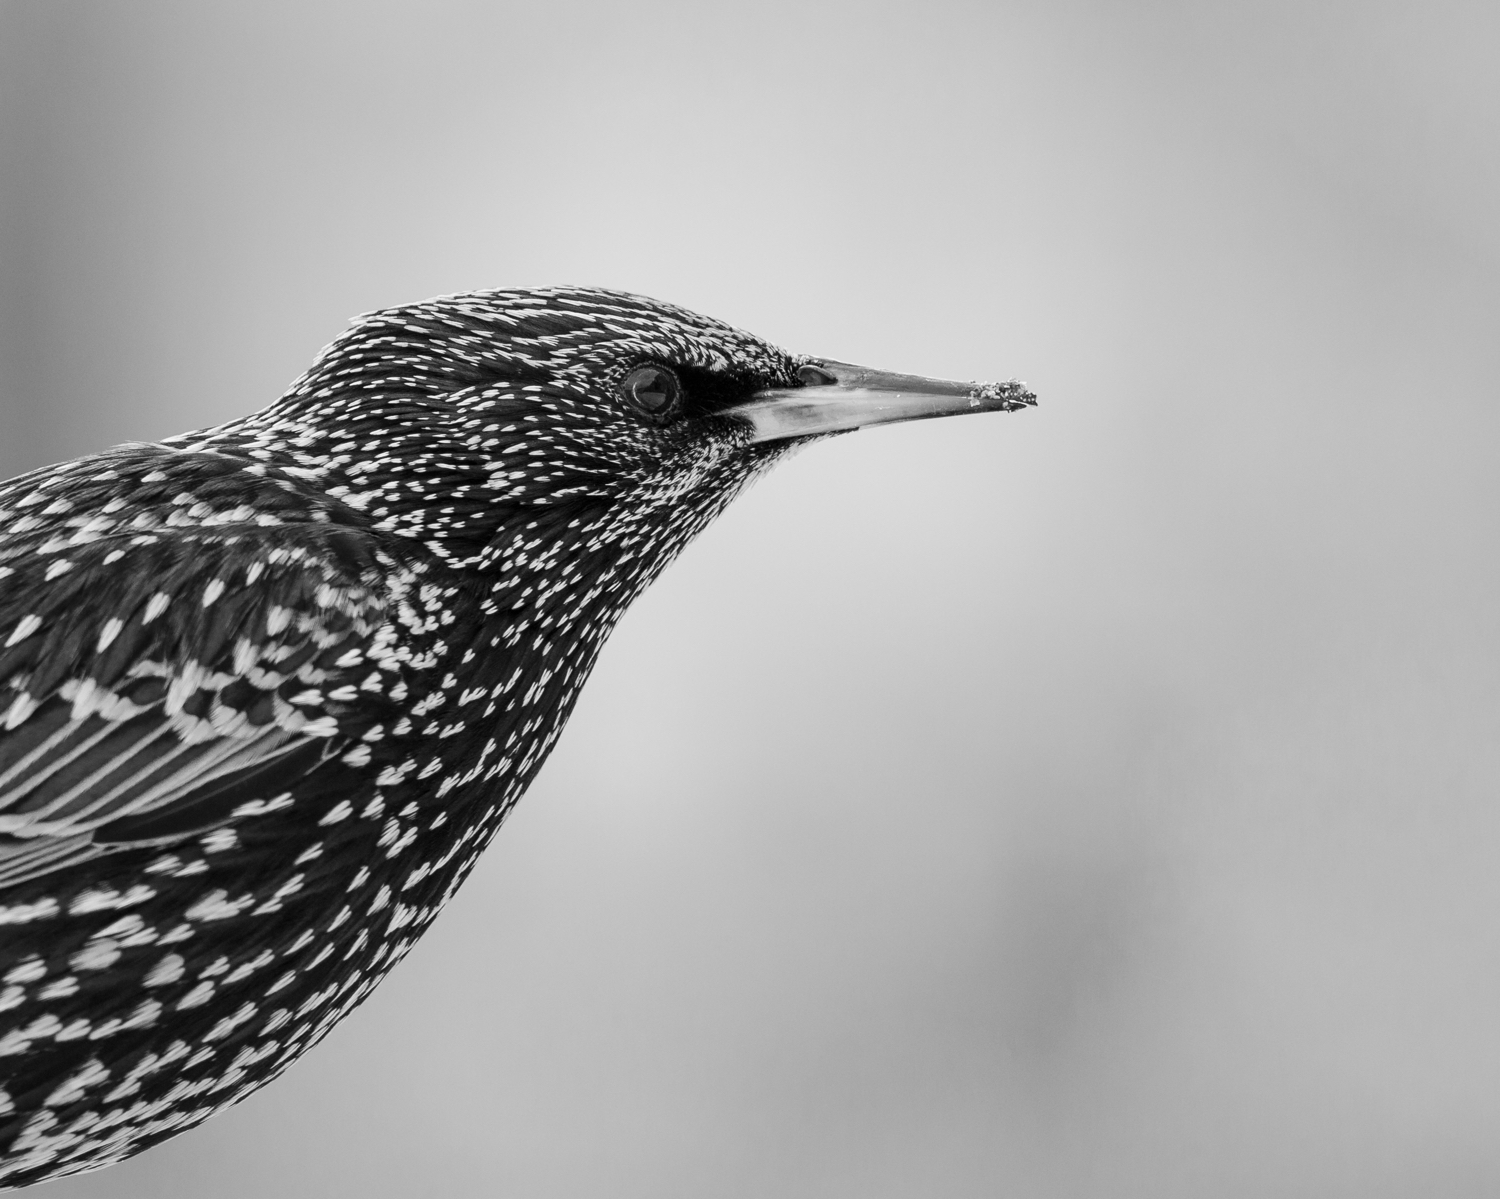 As the year progressed I seemed to take more and more wildlife shots.  This Starling was captured in St. Ives.